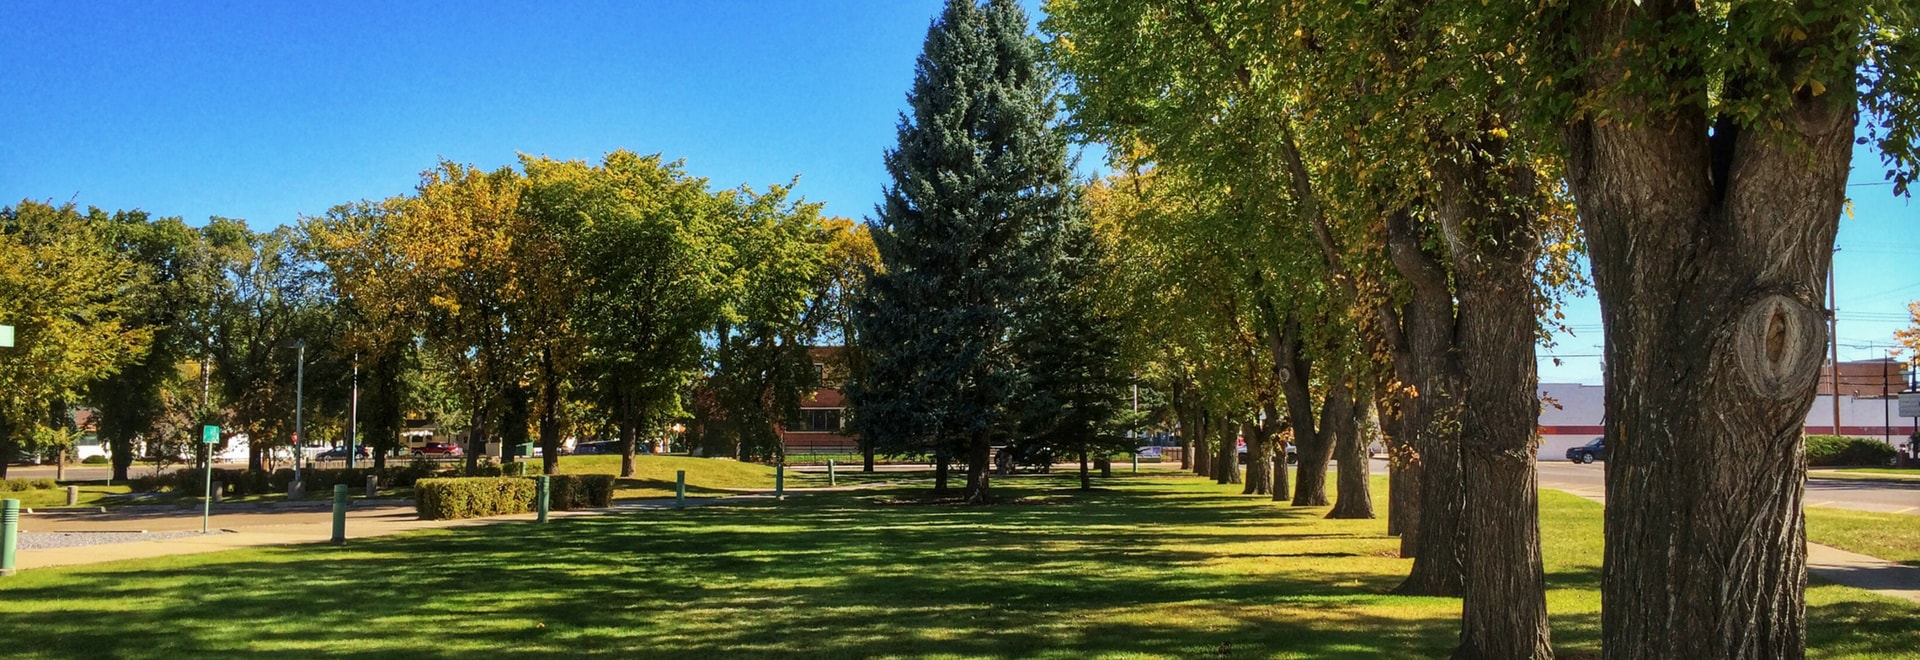 green park in Taber